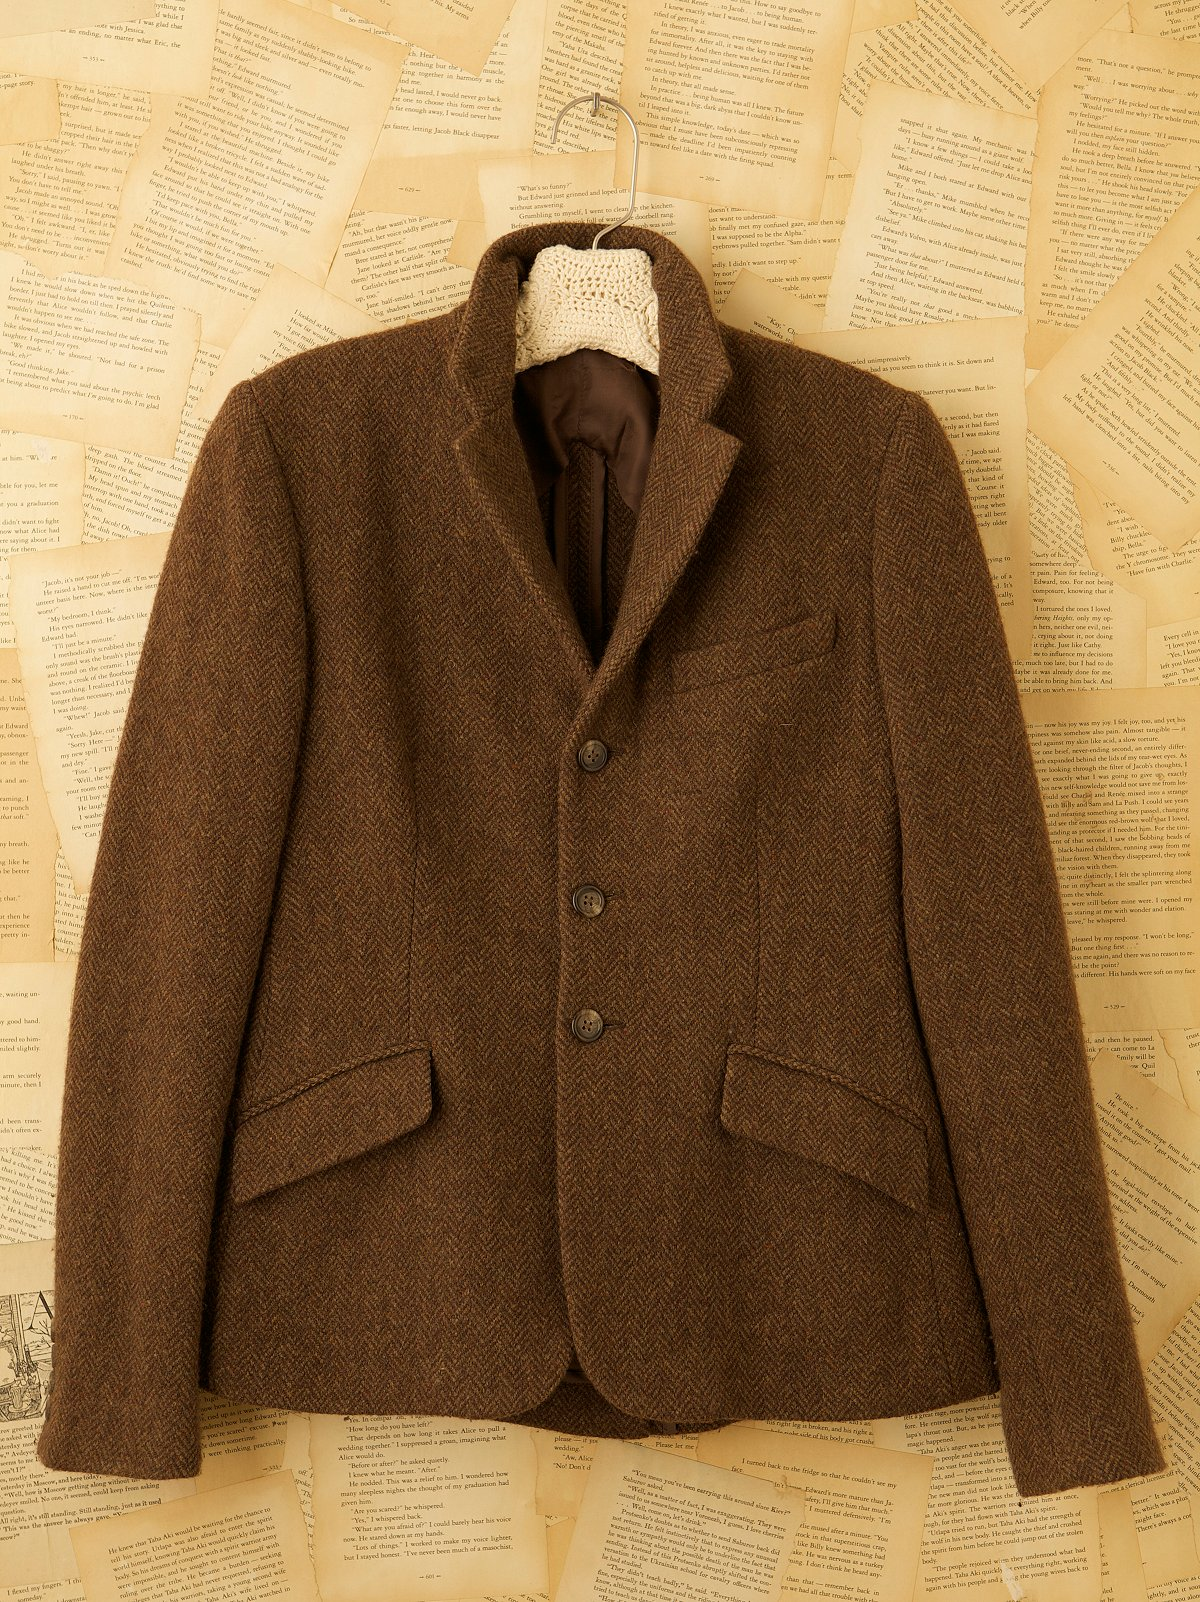 Vintage Cashmere Riding Jacket